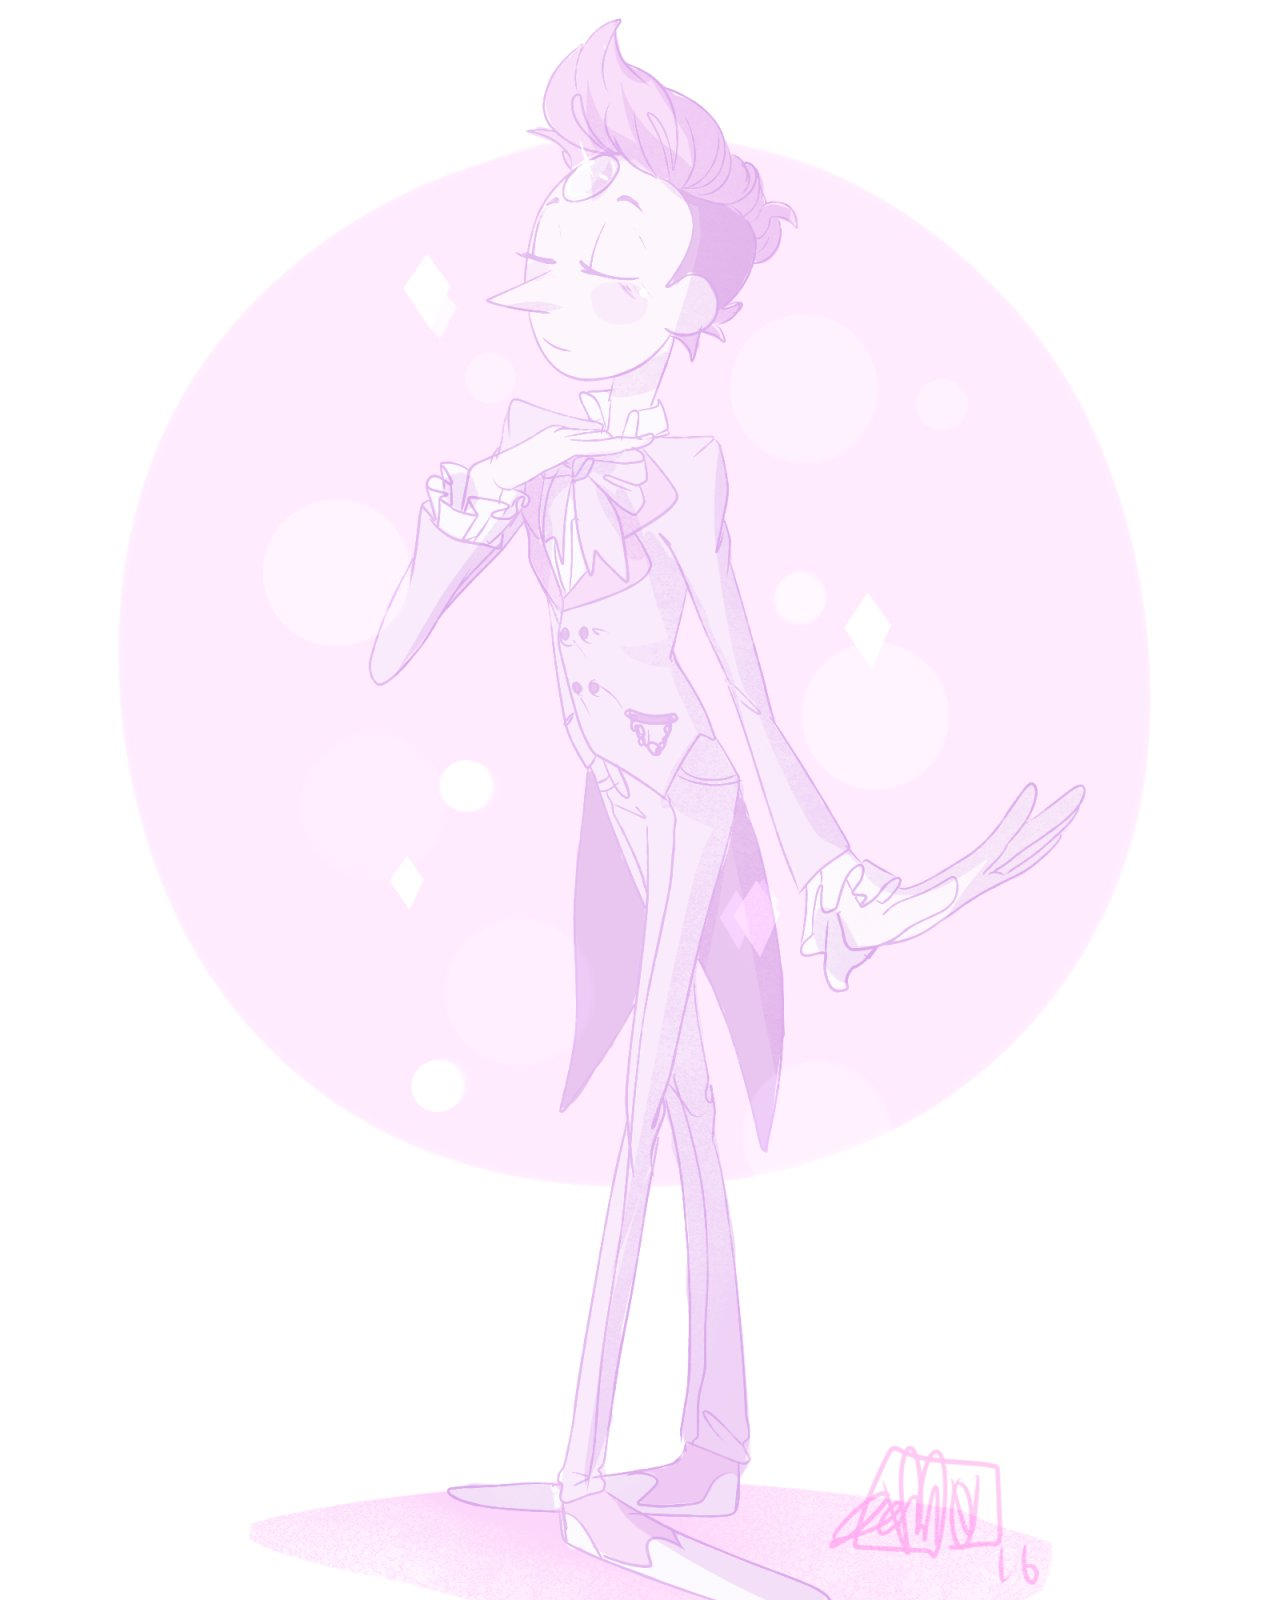 """""""gONNA TAKE A MOMENT OF YOUR TIME TO SHARE THIS BEAUTIFUL LILAC JEN-III DREW FOR ME AMEN"""""""